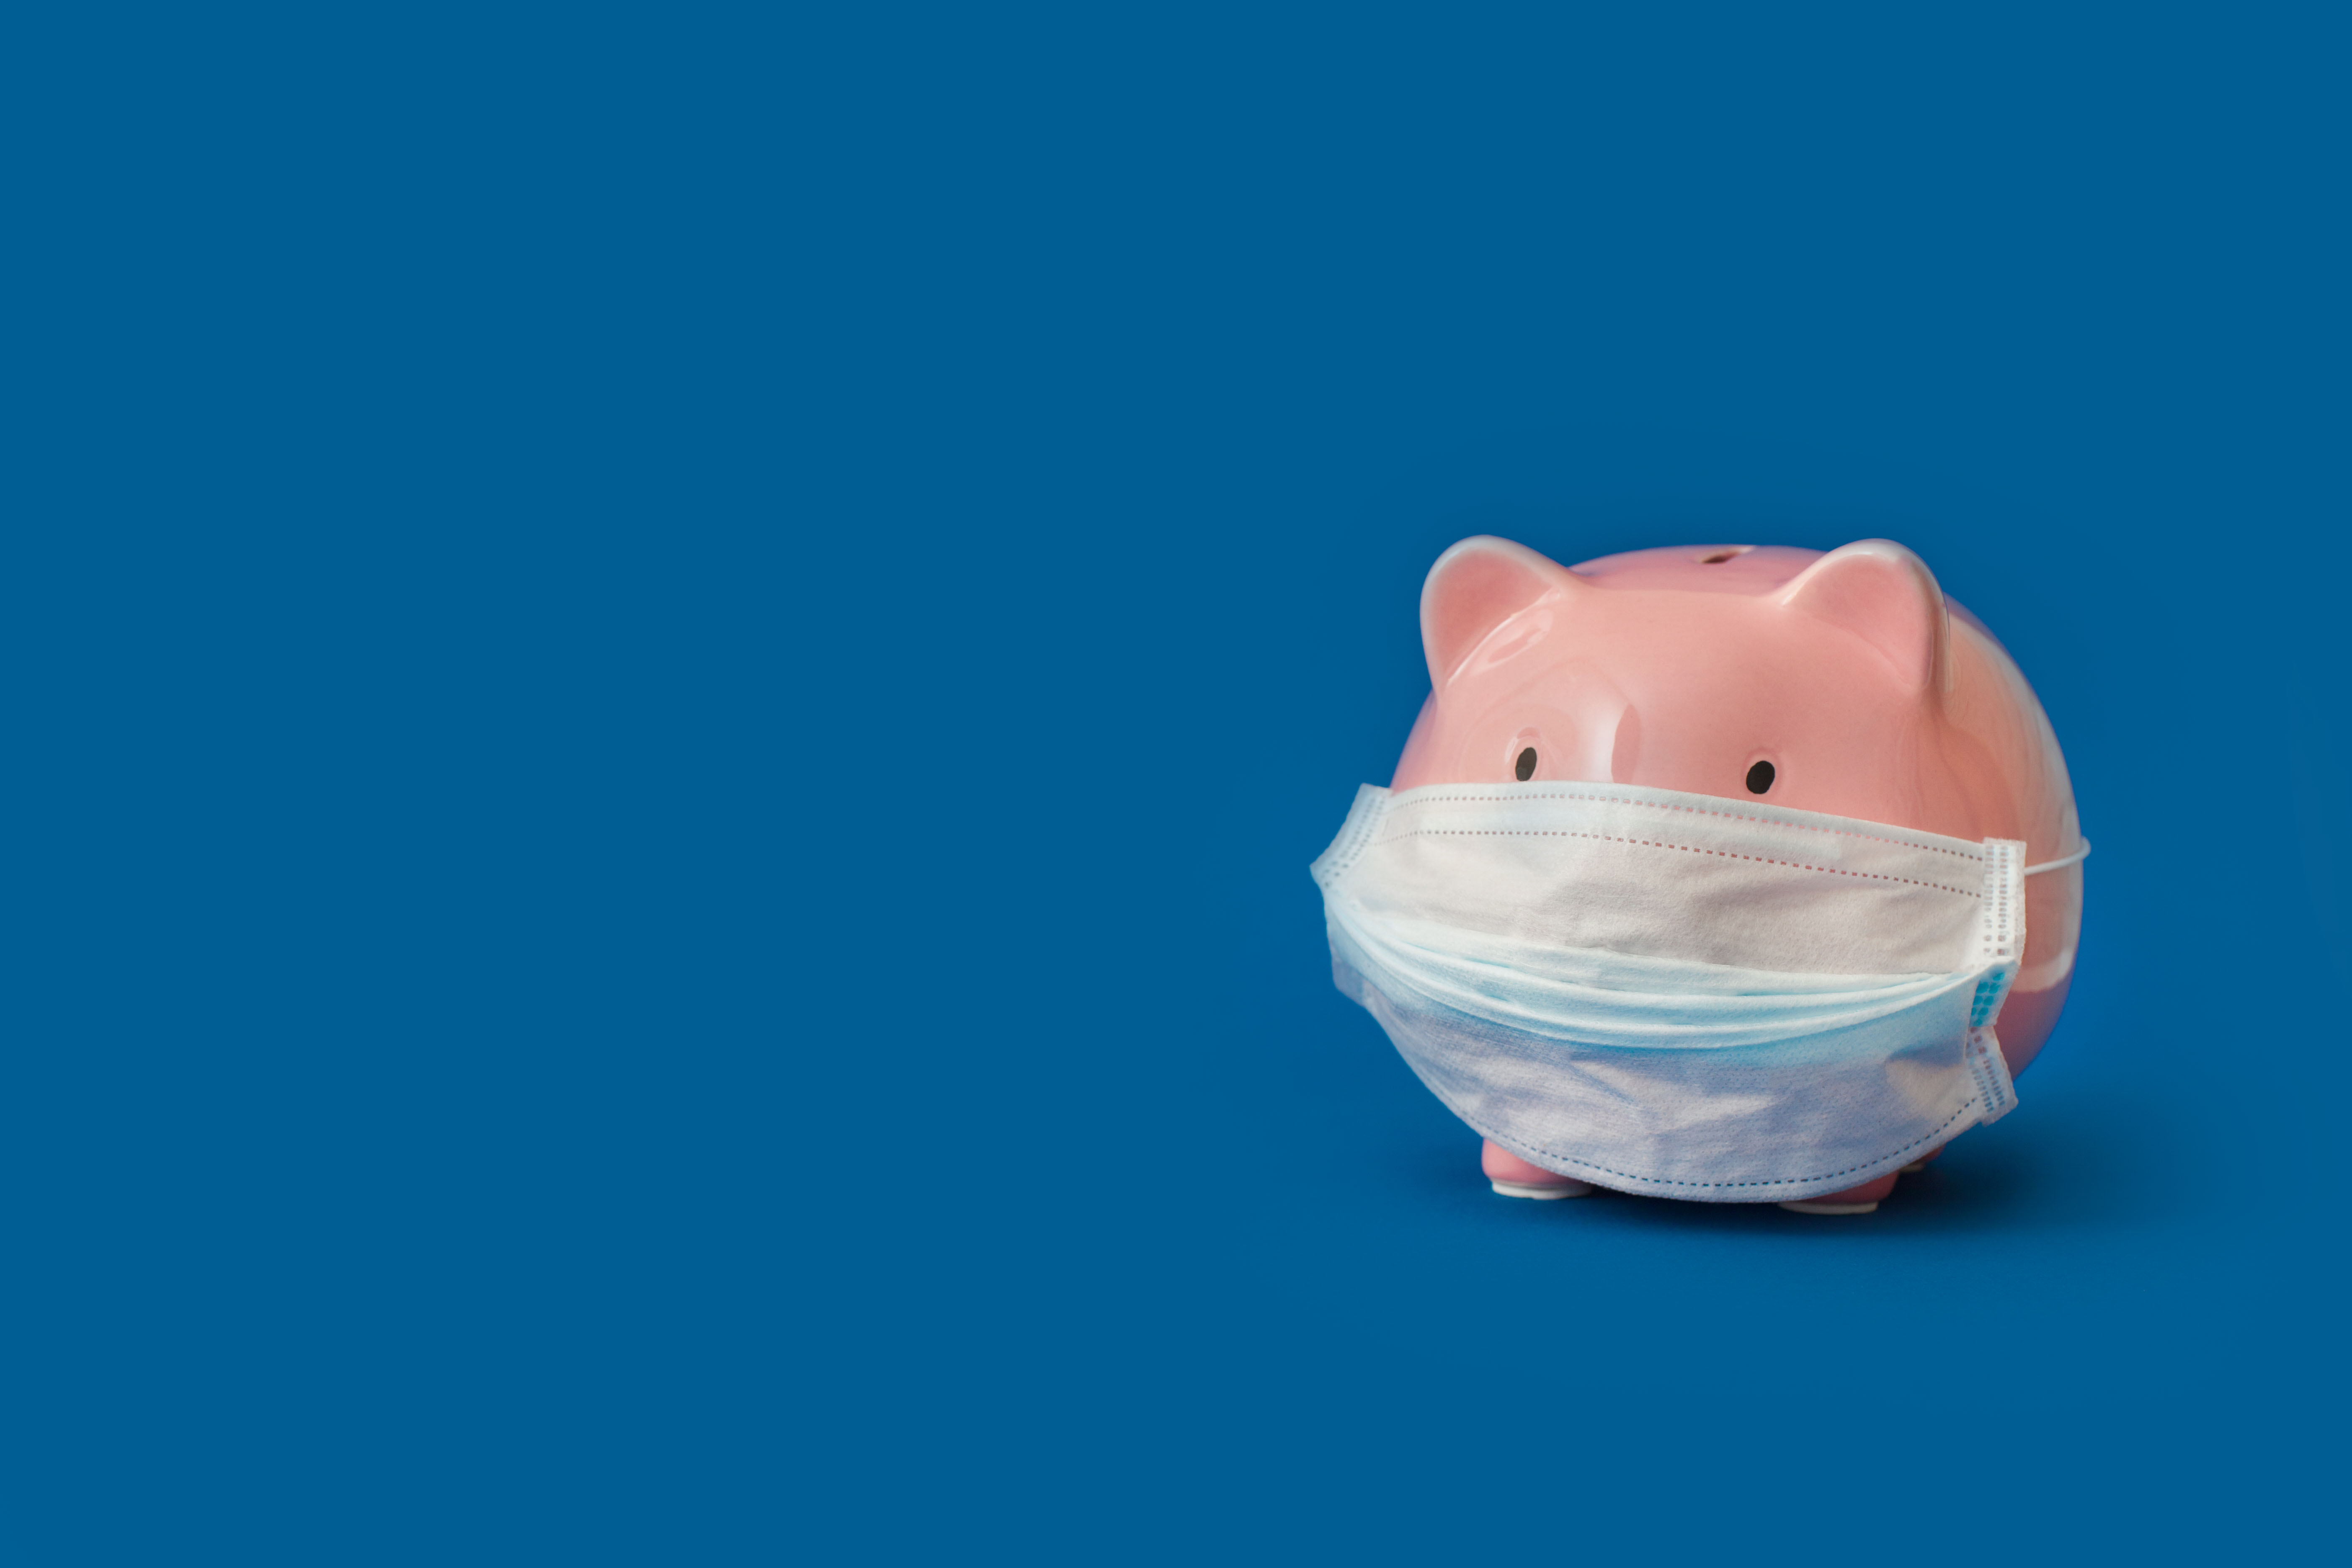 Piggy Bank with a surgical mask on.